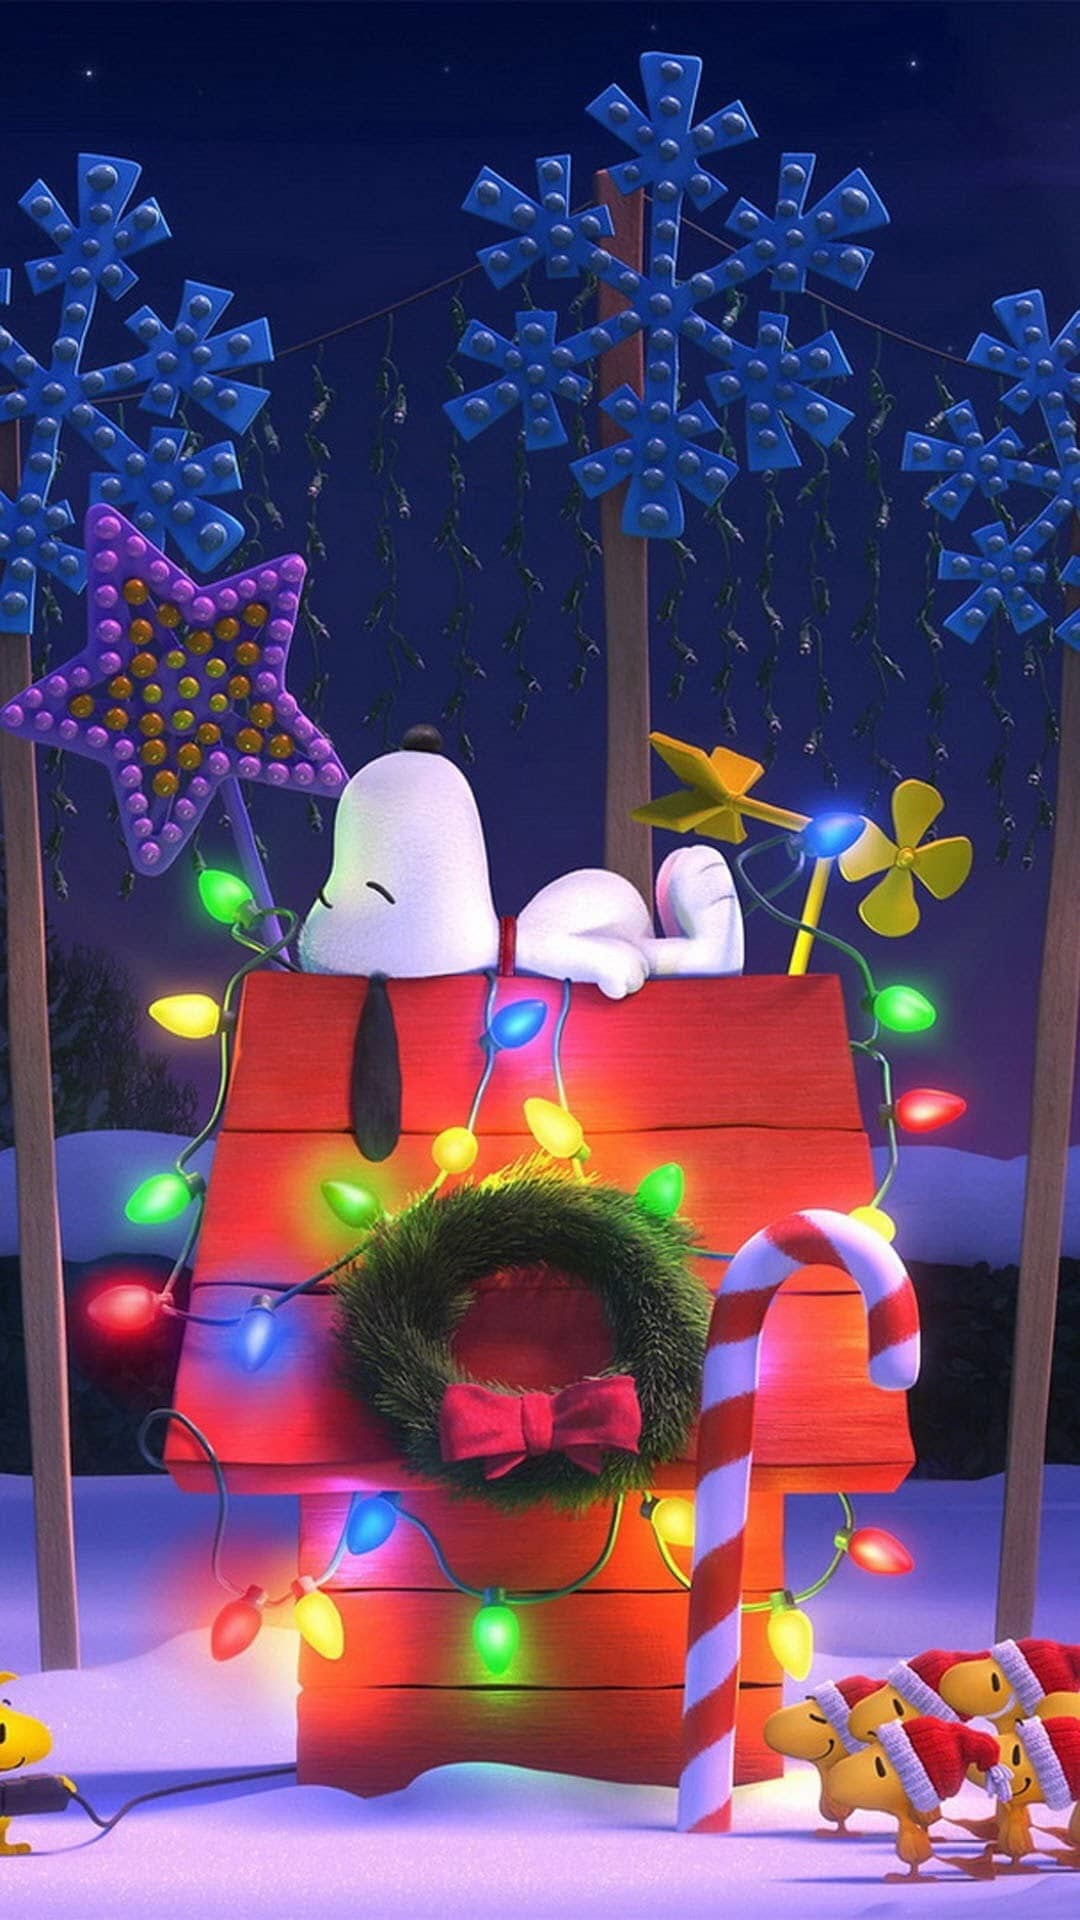 Snoopy Wallpaper and Screensavers (44+ images)